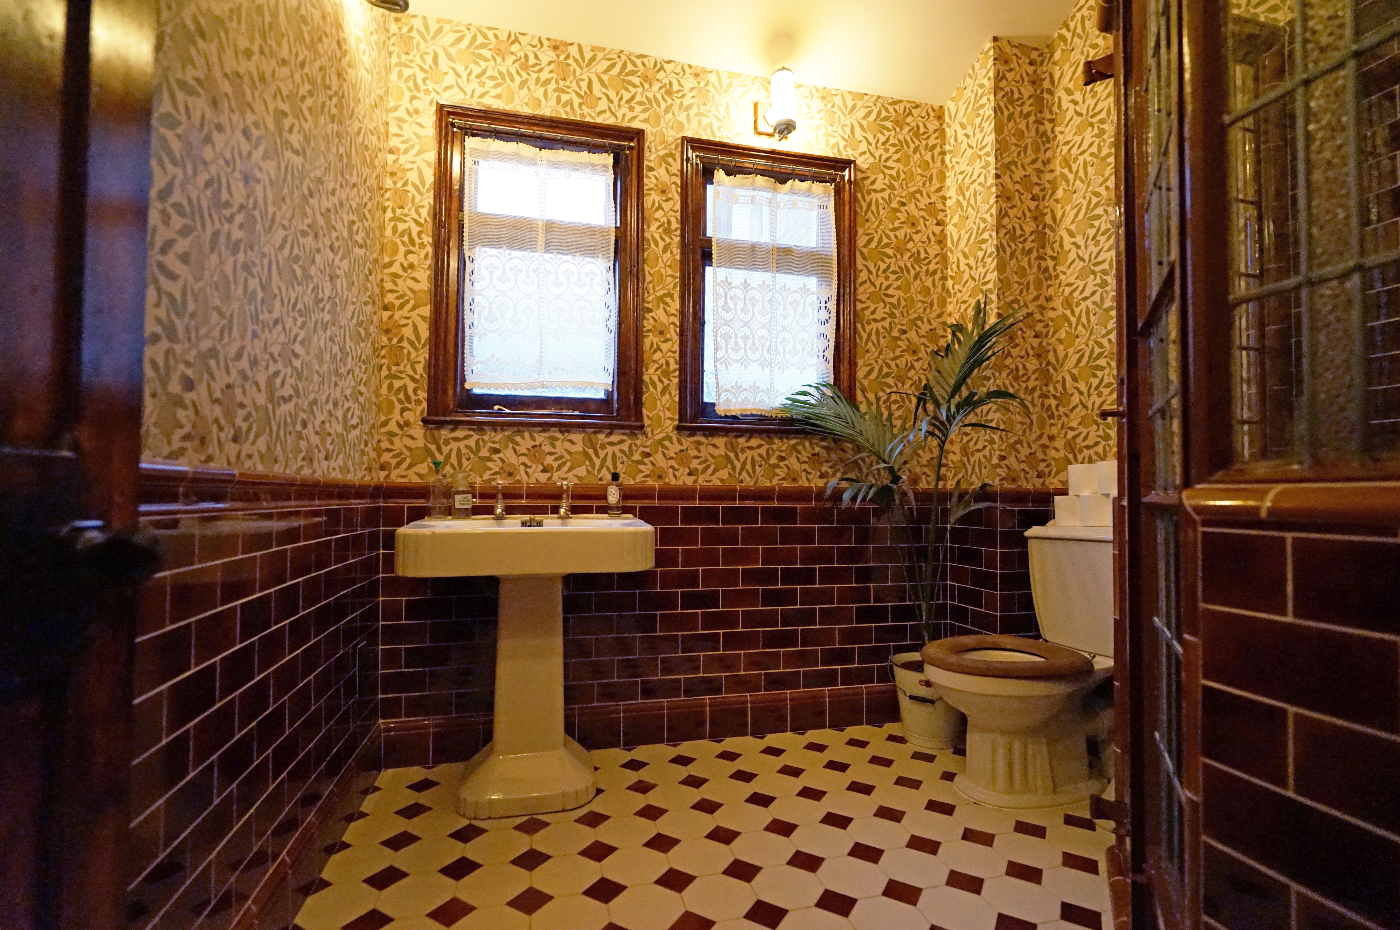 Victorian Ceramic Bathroom Tiles Tile Restoration Amp Cleaning North London